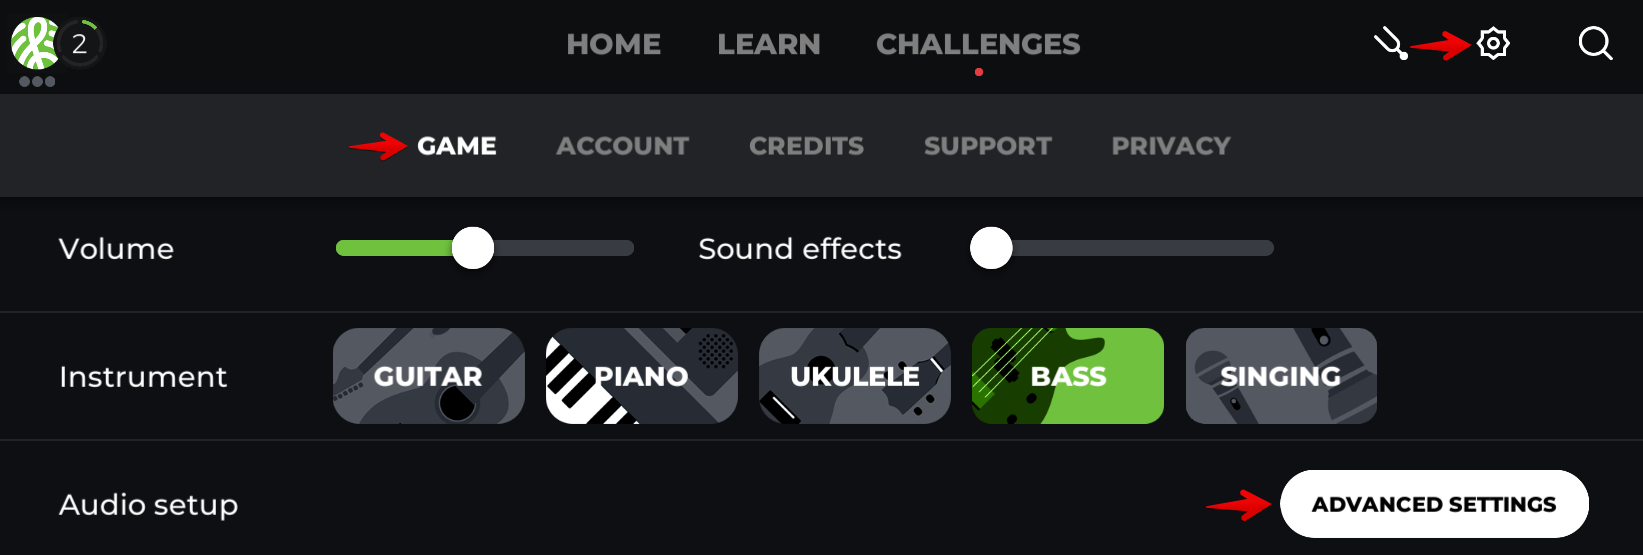 bass_setting.png